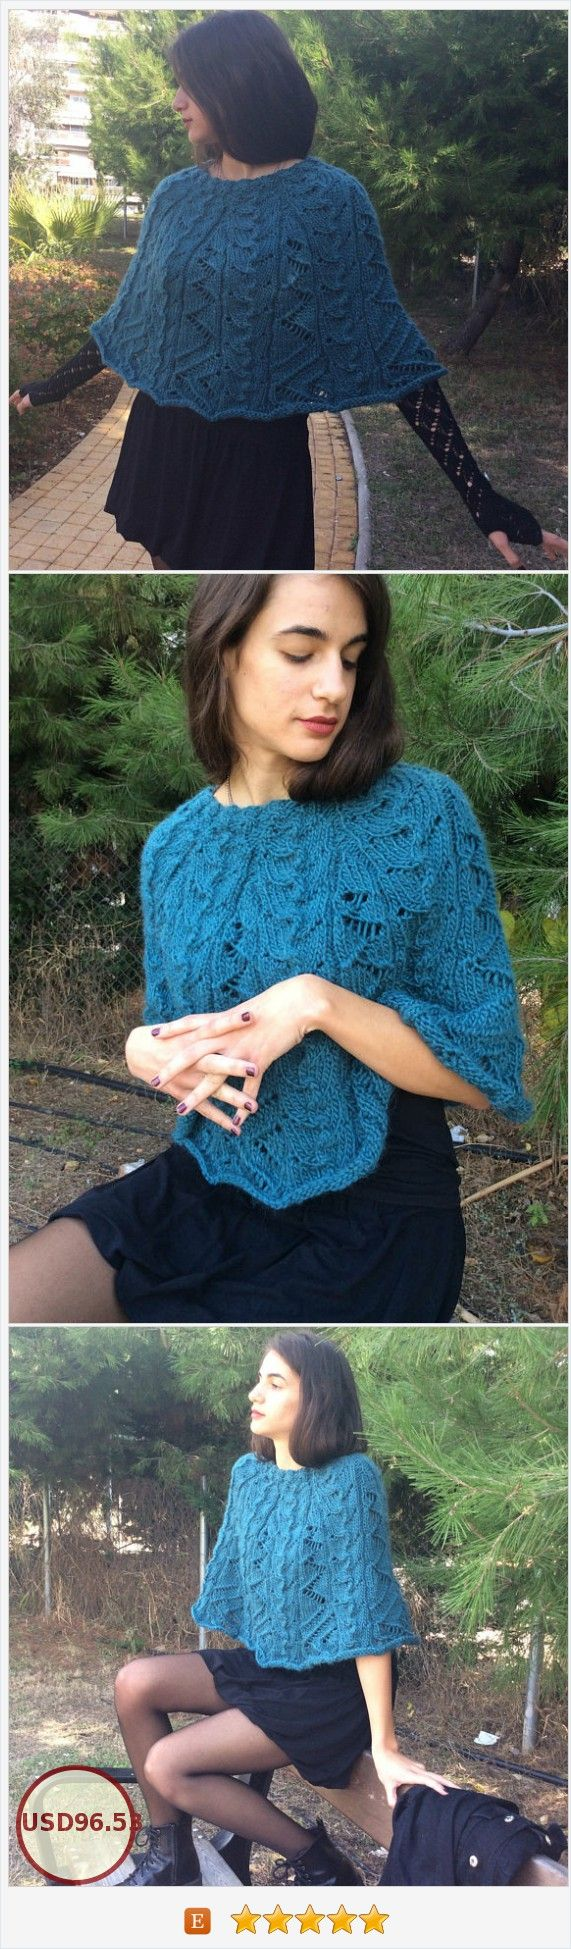 Valentine Poncho HAND KNIT Wool Poncho Women Knit Capelet Trend now Braid Cape Winter Poncho Birthday Gift for Her Wool Knit Cape https://www.etsy.com/DeElenaStyle/listing/464614044/valentine-poncho-hand-knit-wool-poncho?utm_campaign=Share&utm_medium=social_organic&utm_source=MSMT&utm_term=so.smt&share_time=1517380123000